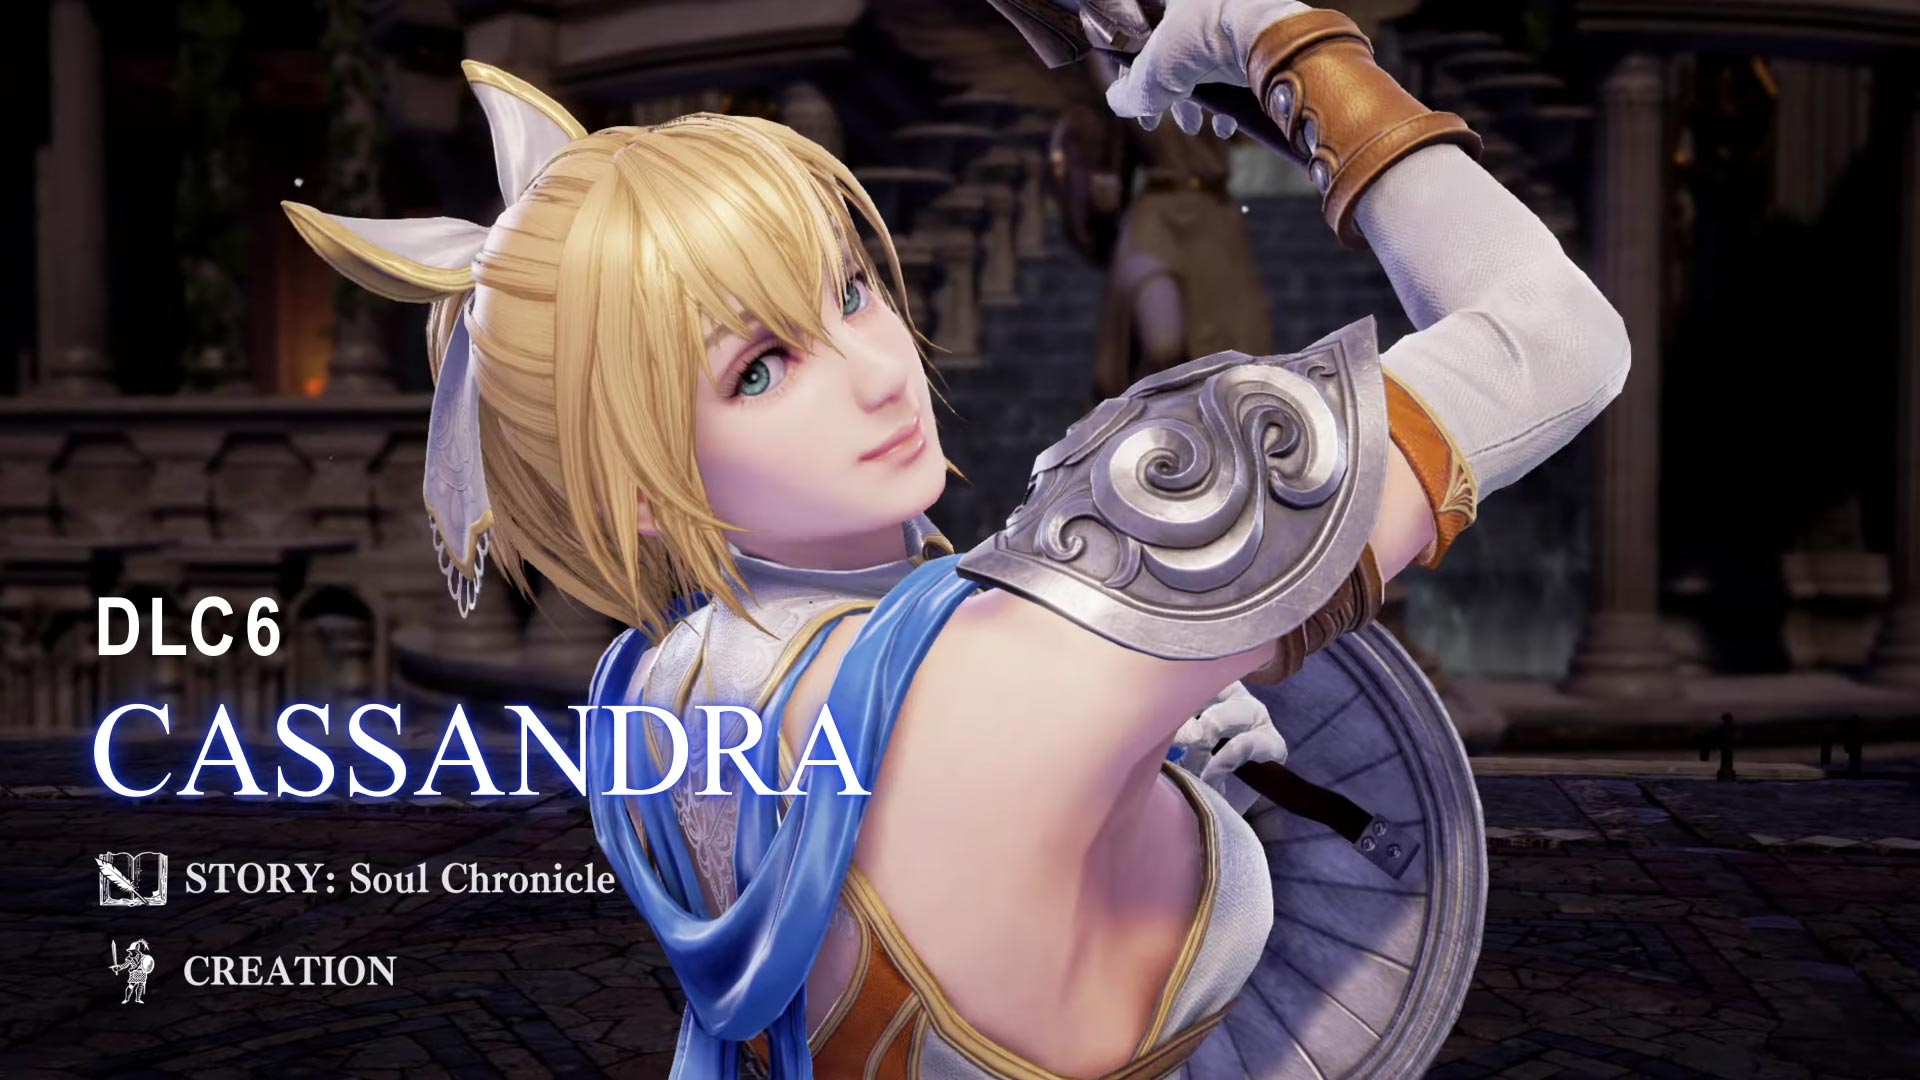 Cassandra and Haohmaru in Soul Calibur 6 2 out of 10 image gallery